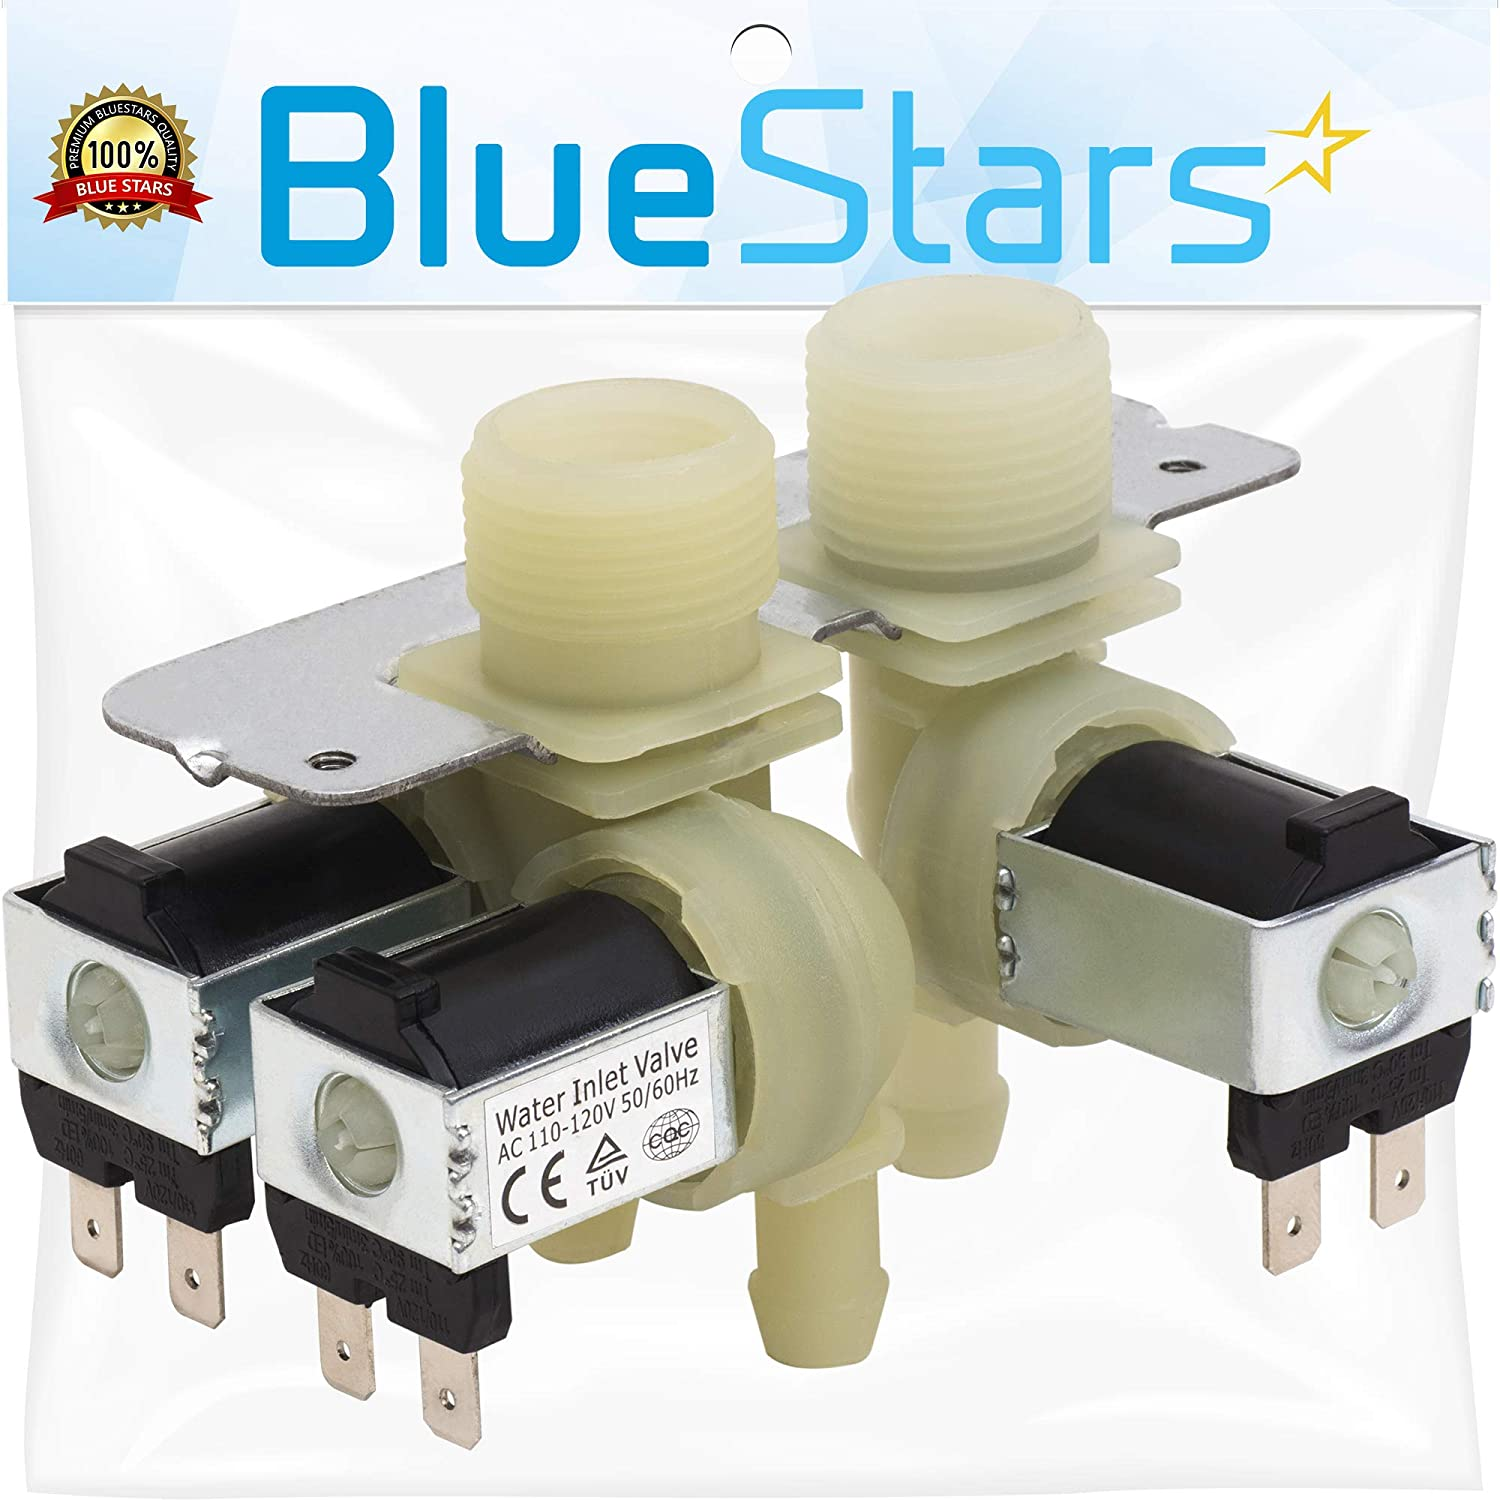 Ultra Durable WH13X10029 Washer Water Inlet Valve Replacement Part by Blue Stars - Exact Fit for GE Washer - Replaces 1475762 AP4303282 PS1482392